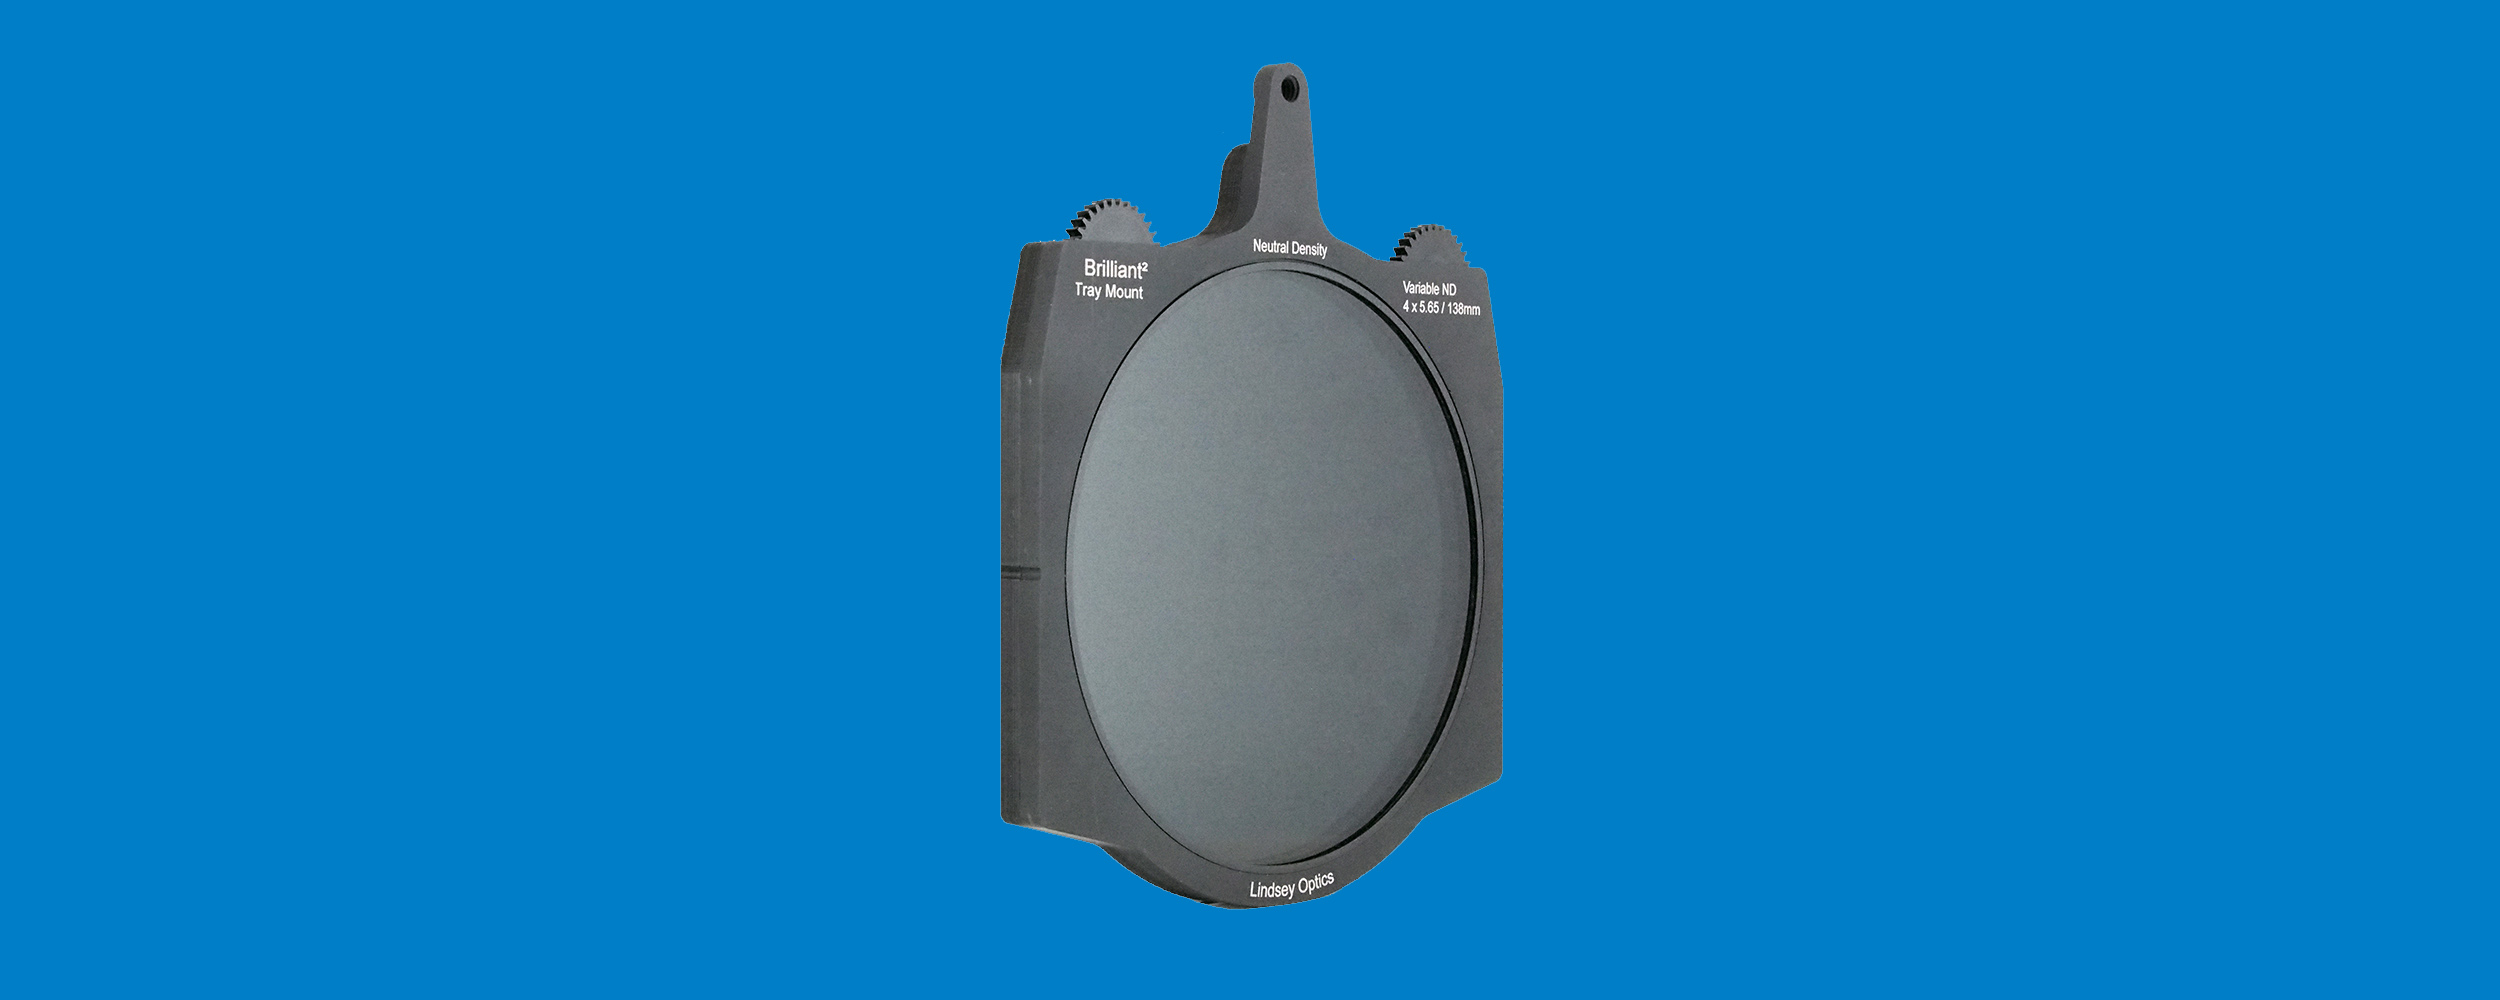 Lindsey Optics Brilliant² Variable Neutral Density Filter